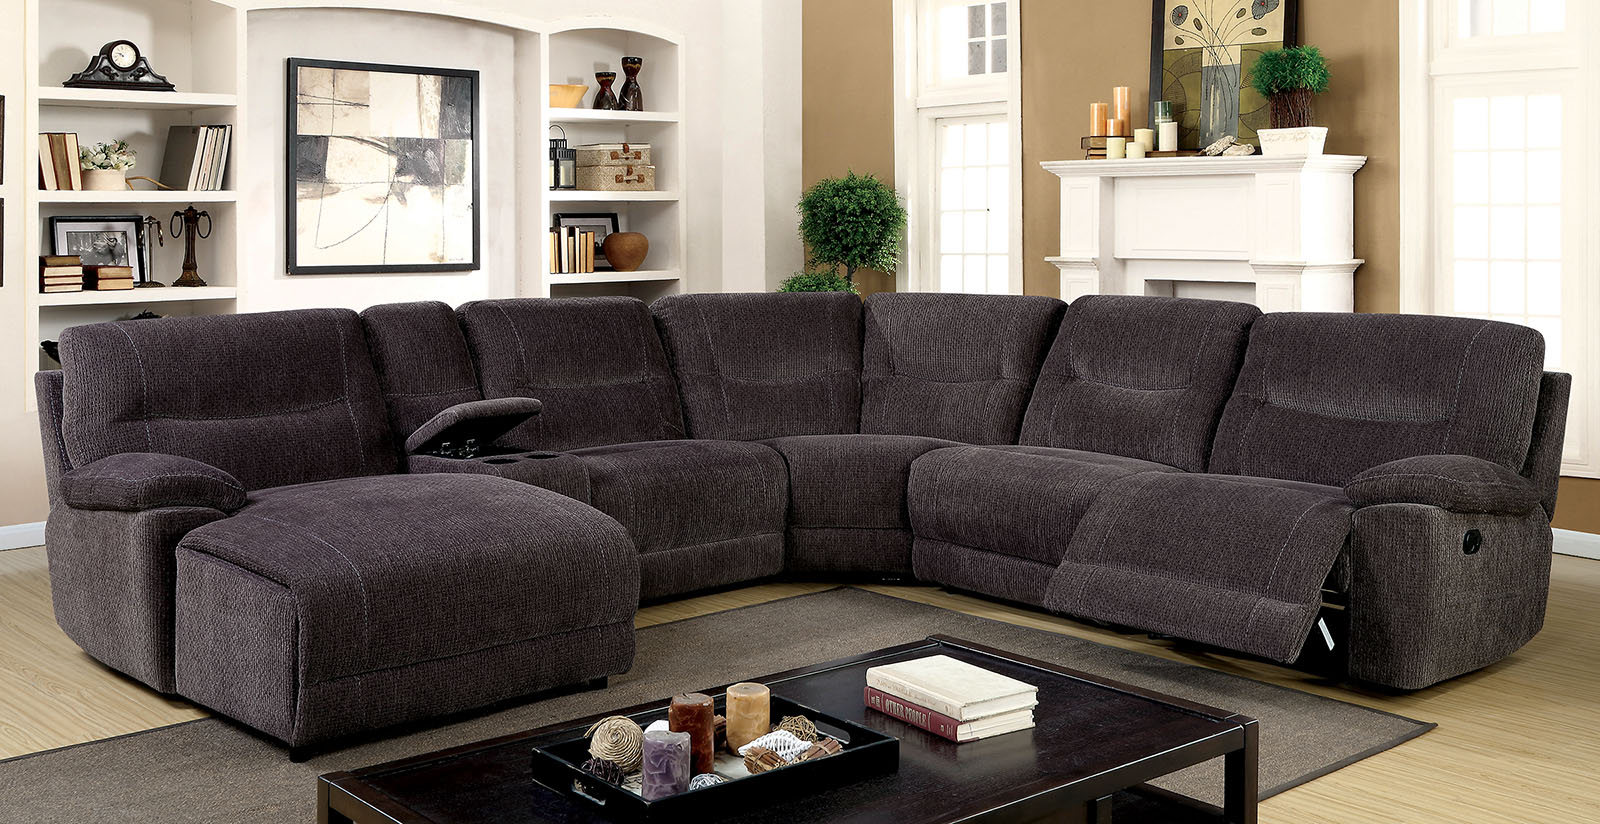 Grey Chenille Fabric Recliner Sectional